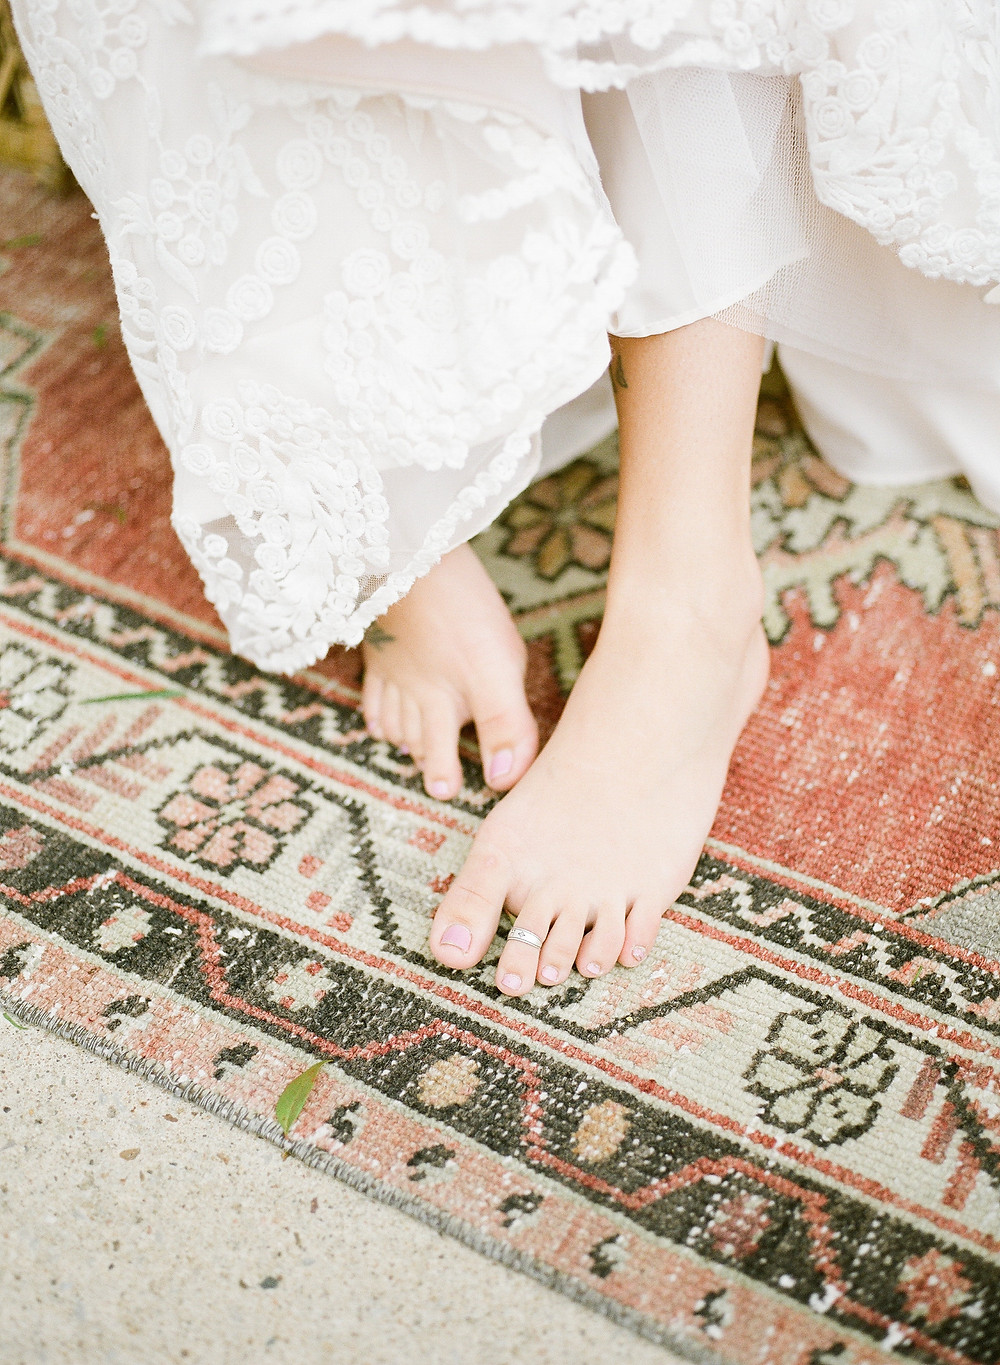 brides feet on a vintage boho rug in shades of rust, cream, and brown